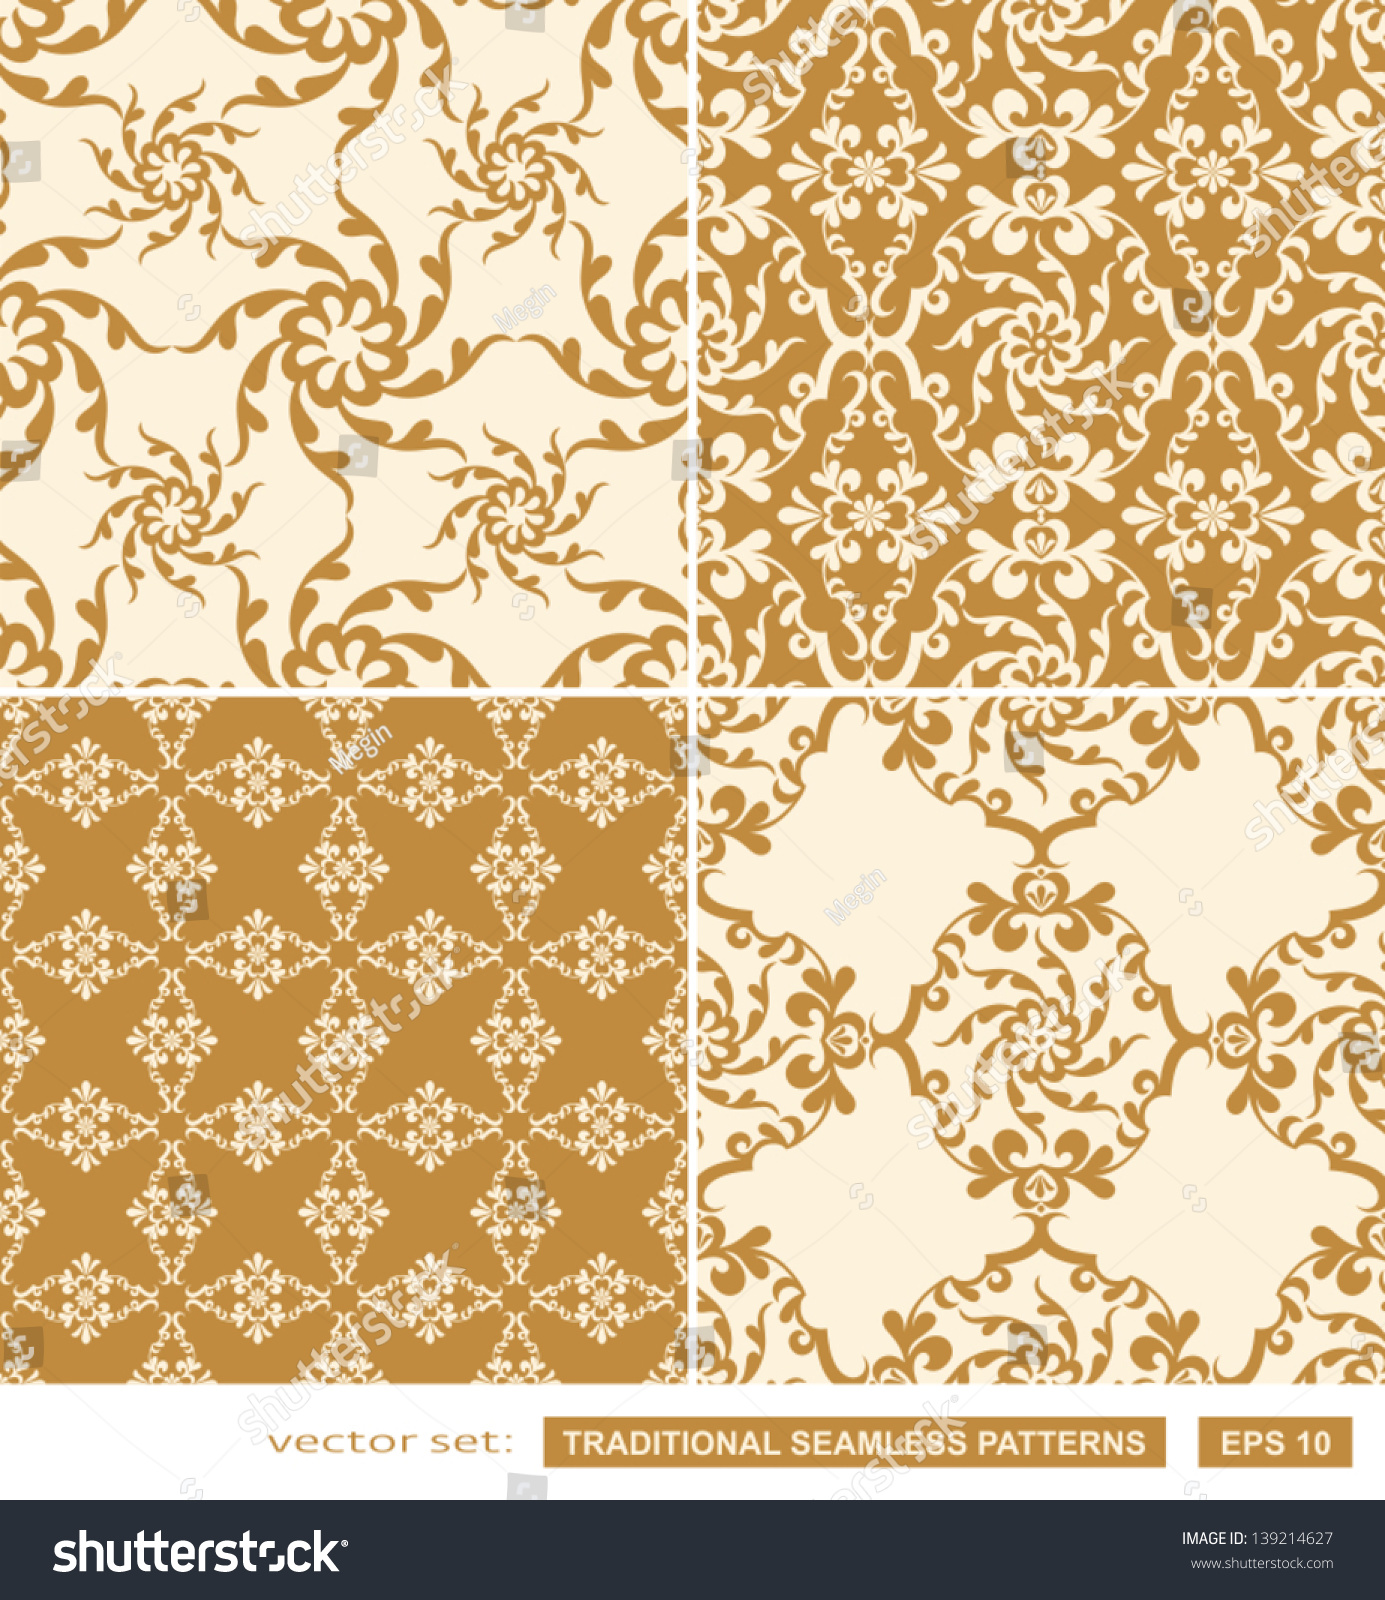 Vintage Backgrounds Classic Ornament Beautiful Seamless Patterns Vector Wallpapers Floral Fashion Fabrics